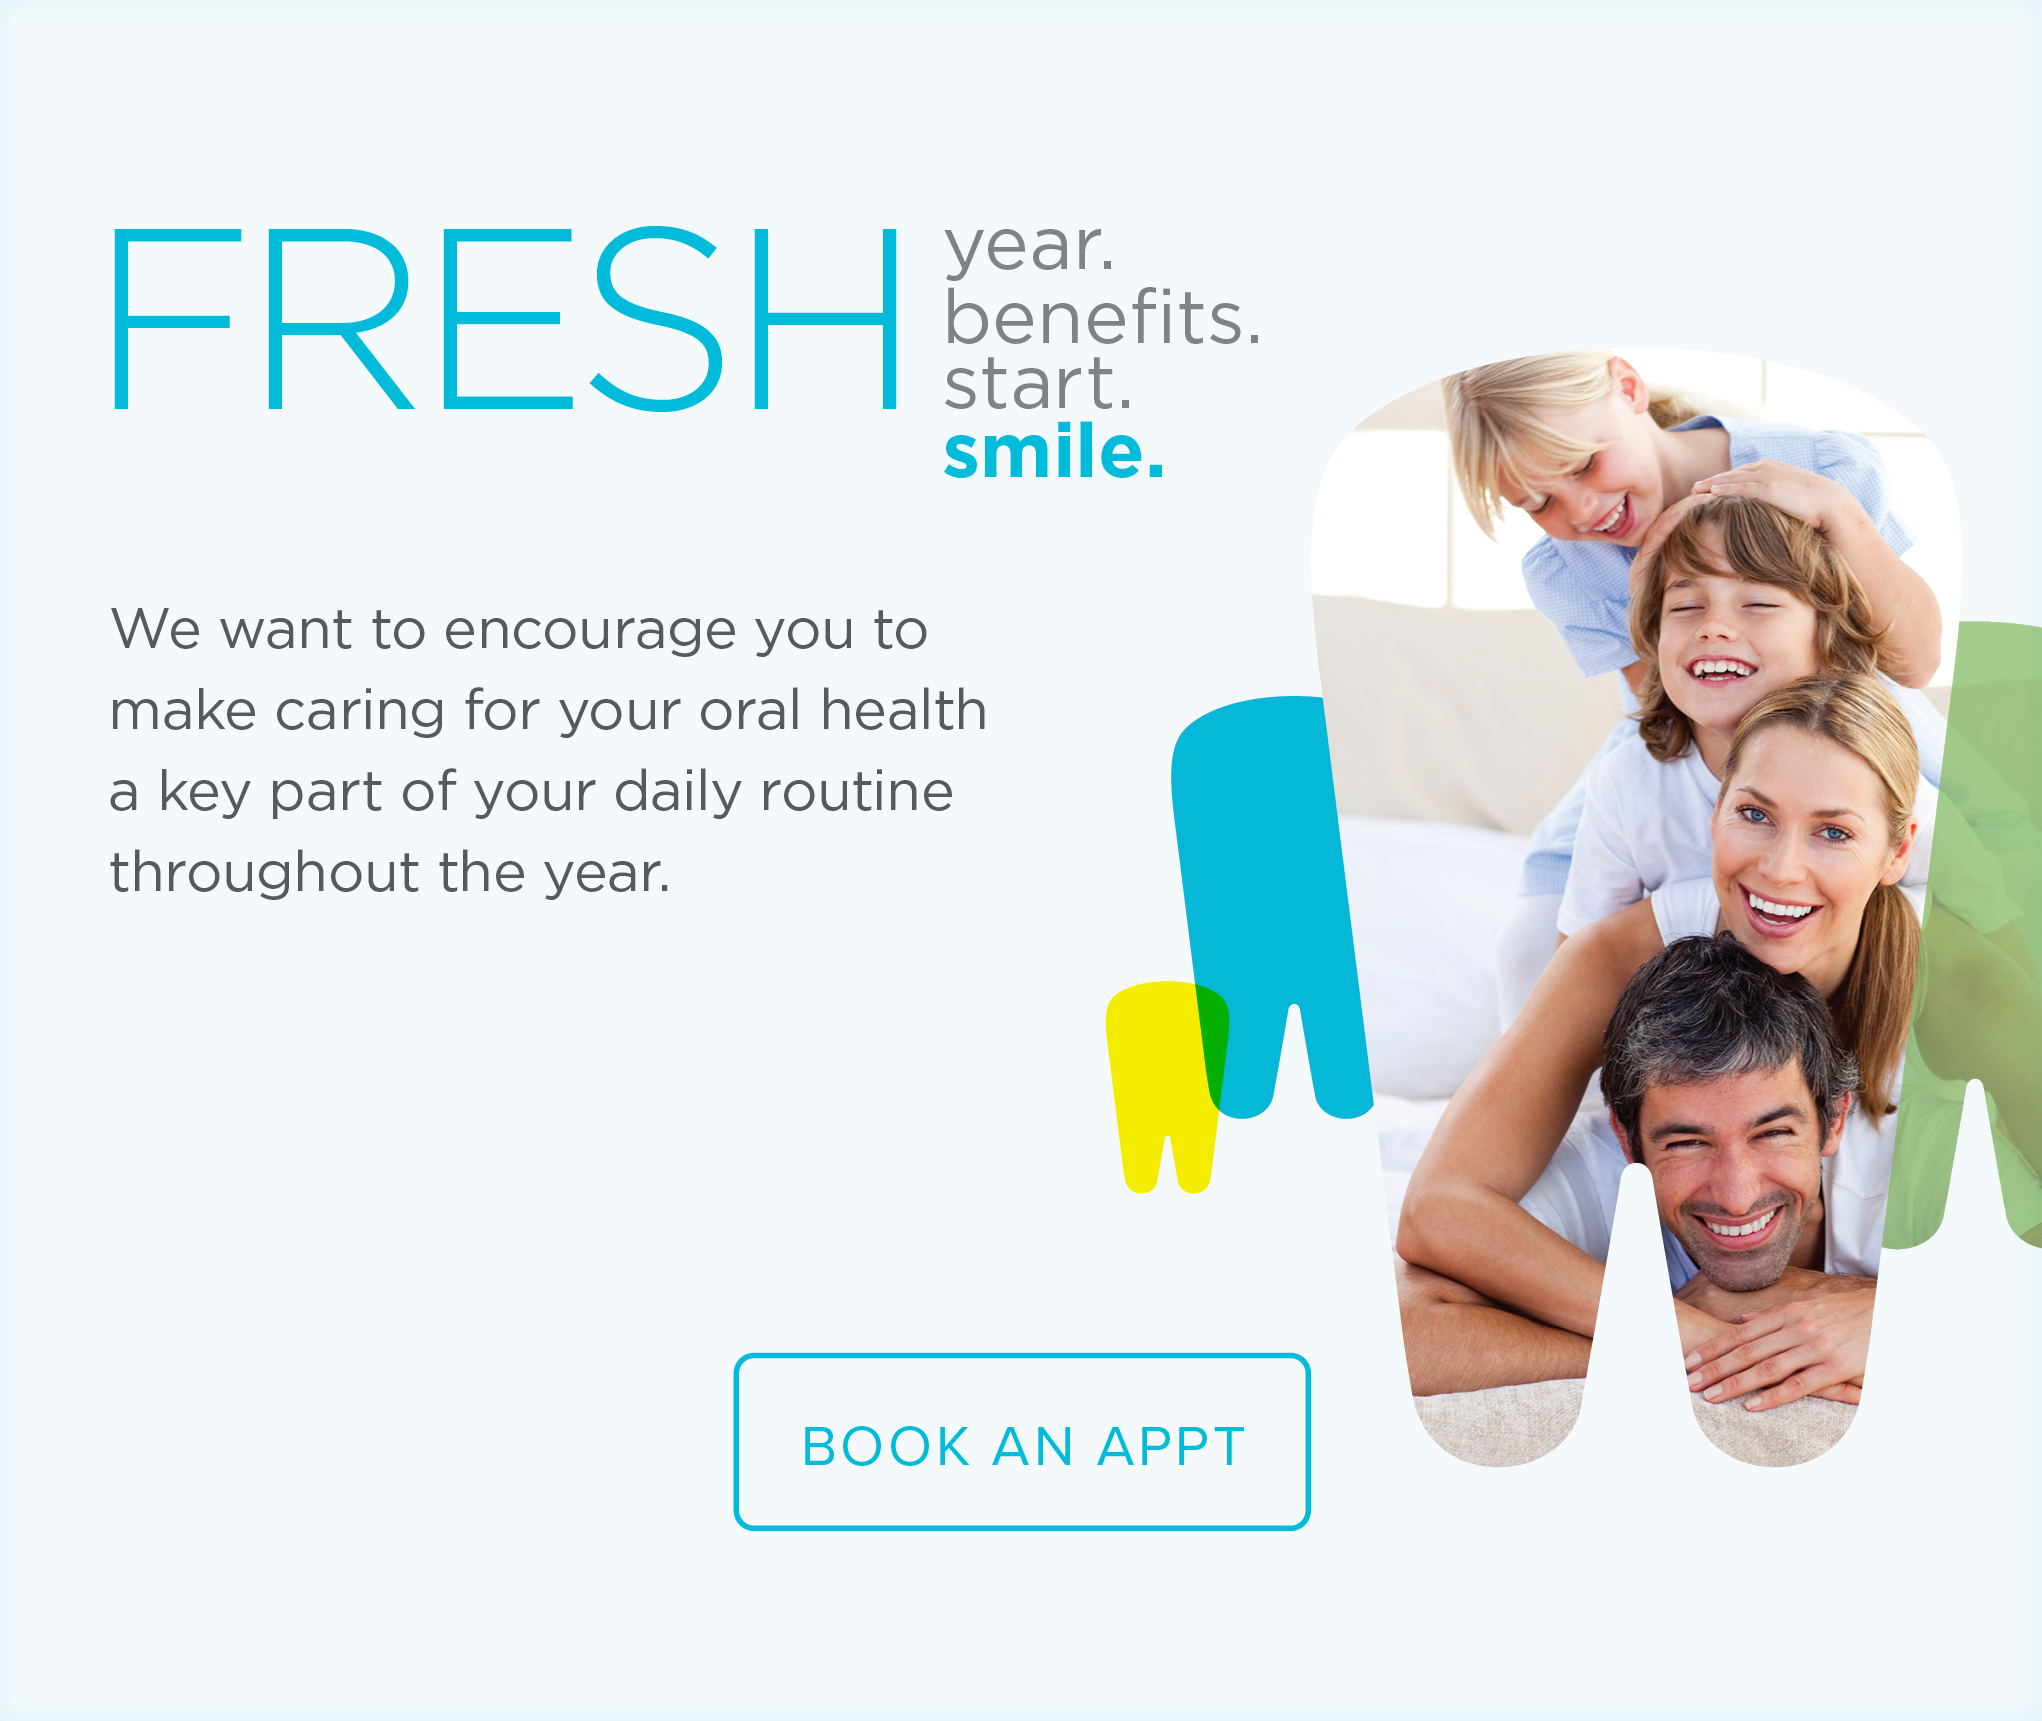 Sierra Commons Dental Group and Orthodontics - Make the Most of Your Benefits